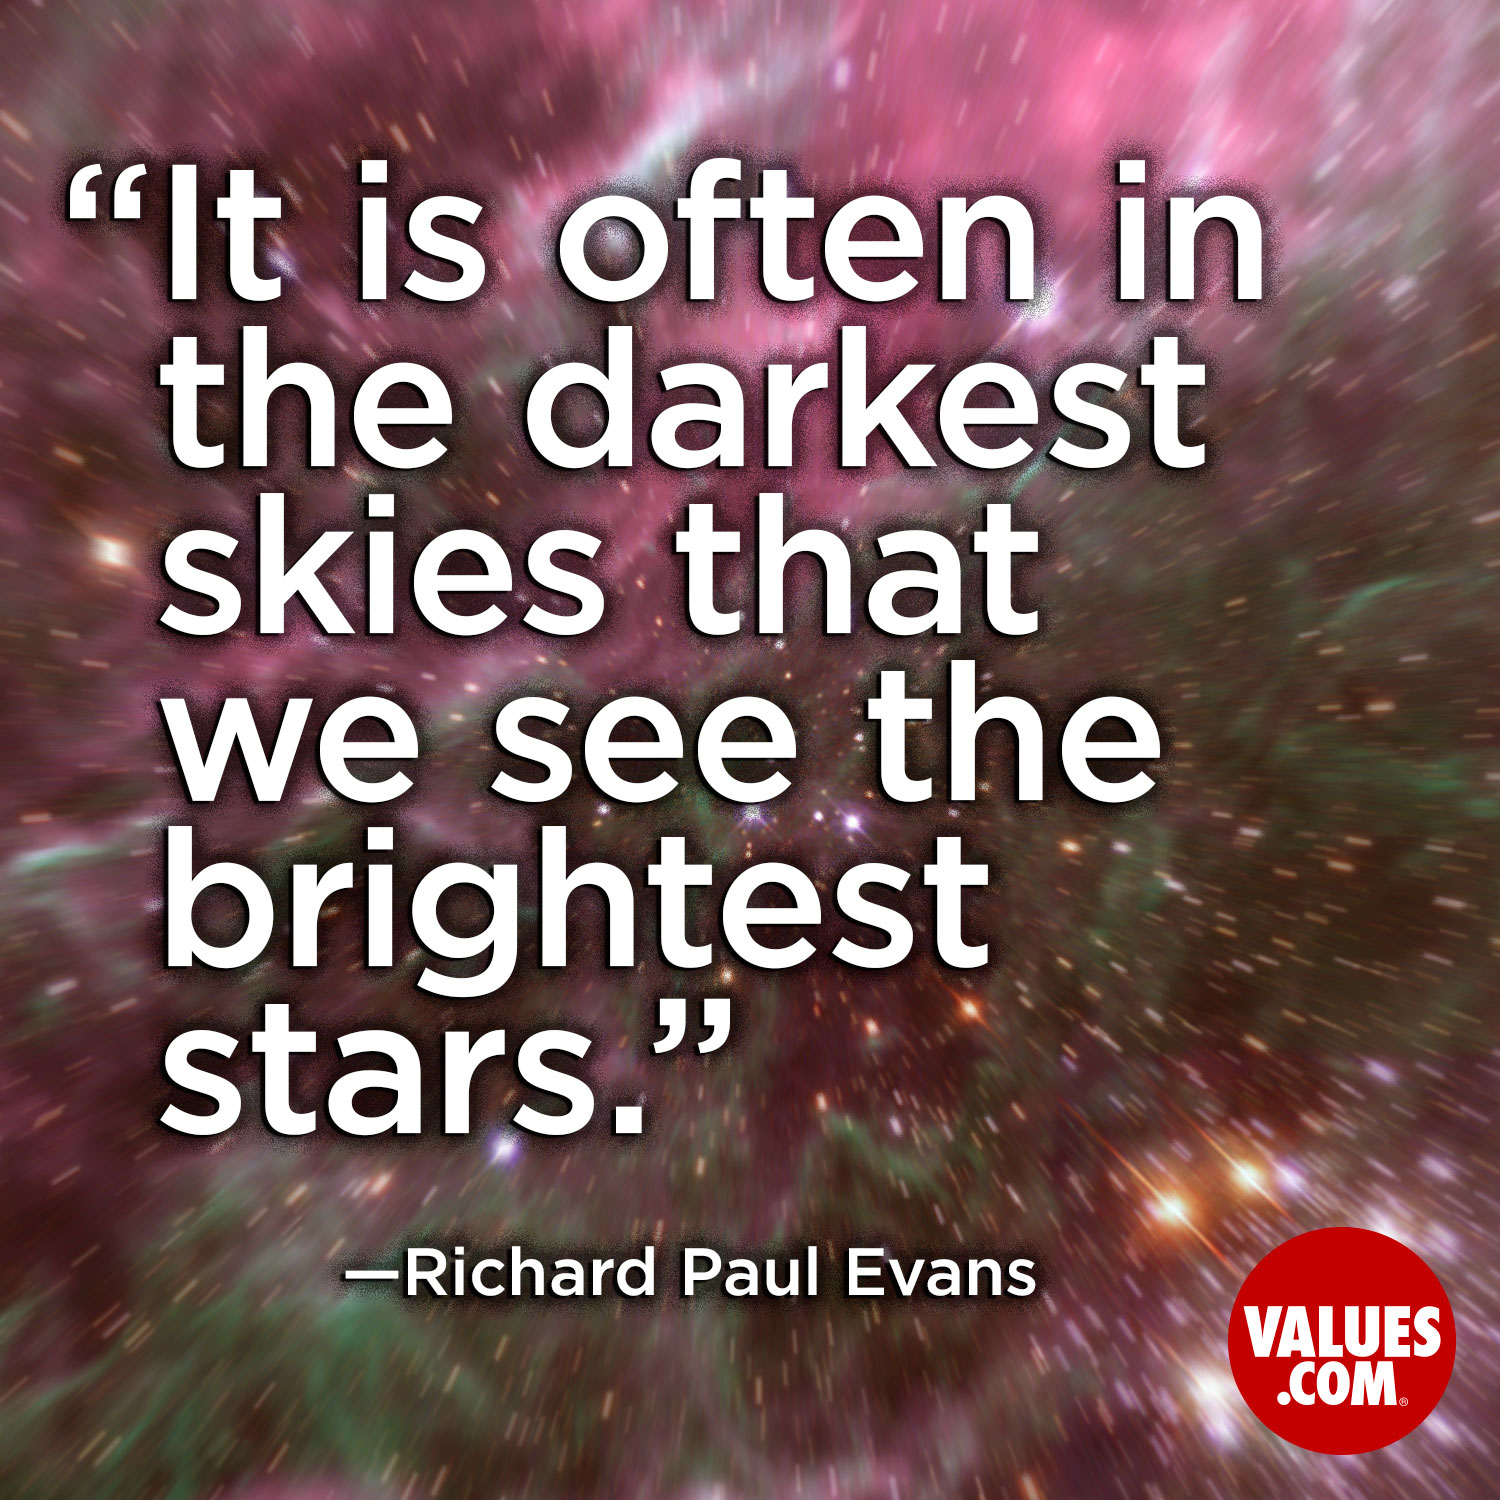 It is often in the darkest skies that we see the brightest stars. —Richard Paul Evans